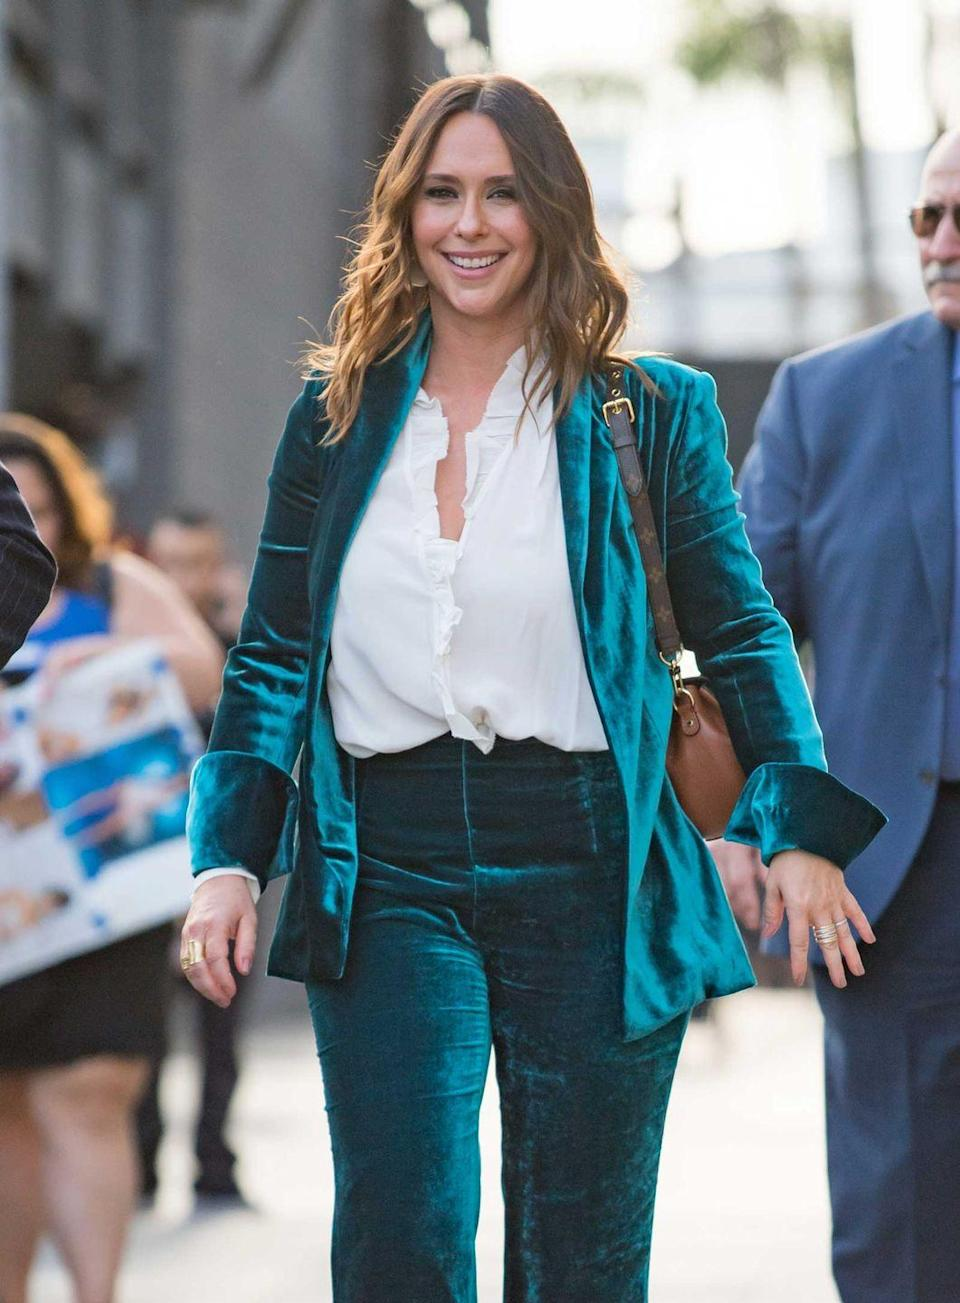 <p>At just 10 years old, Jennifer Love Hewitt moved to L.A. to pursue a music career, <em>not</em> an acting one. Things change, mmkay?! Her debut album, <em>Love Songs</em>, was released exclusively in Japan. Of her four studio albums, <em>BareNaked</em>, released in 2002, was the lucky one to break into the charts. </p>